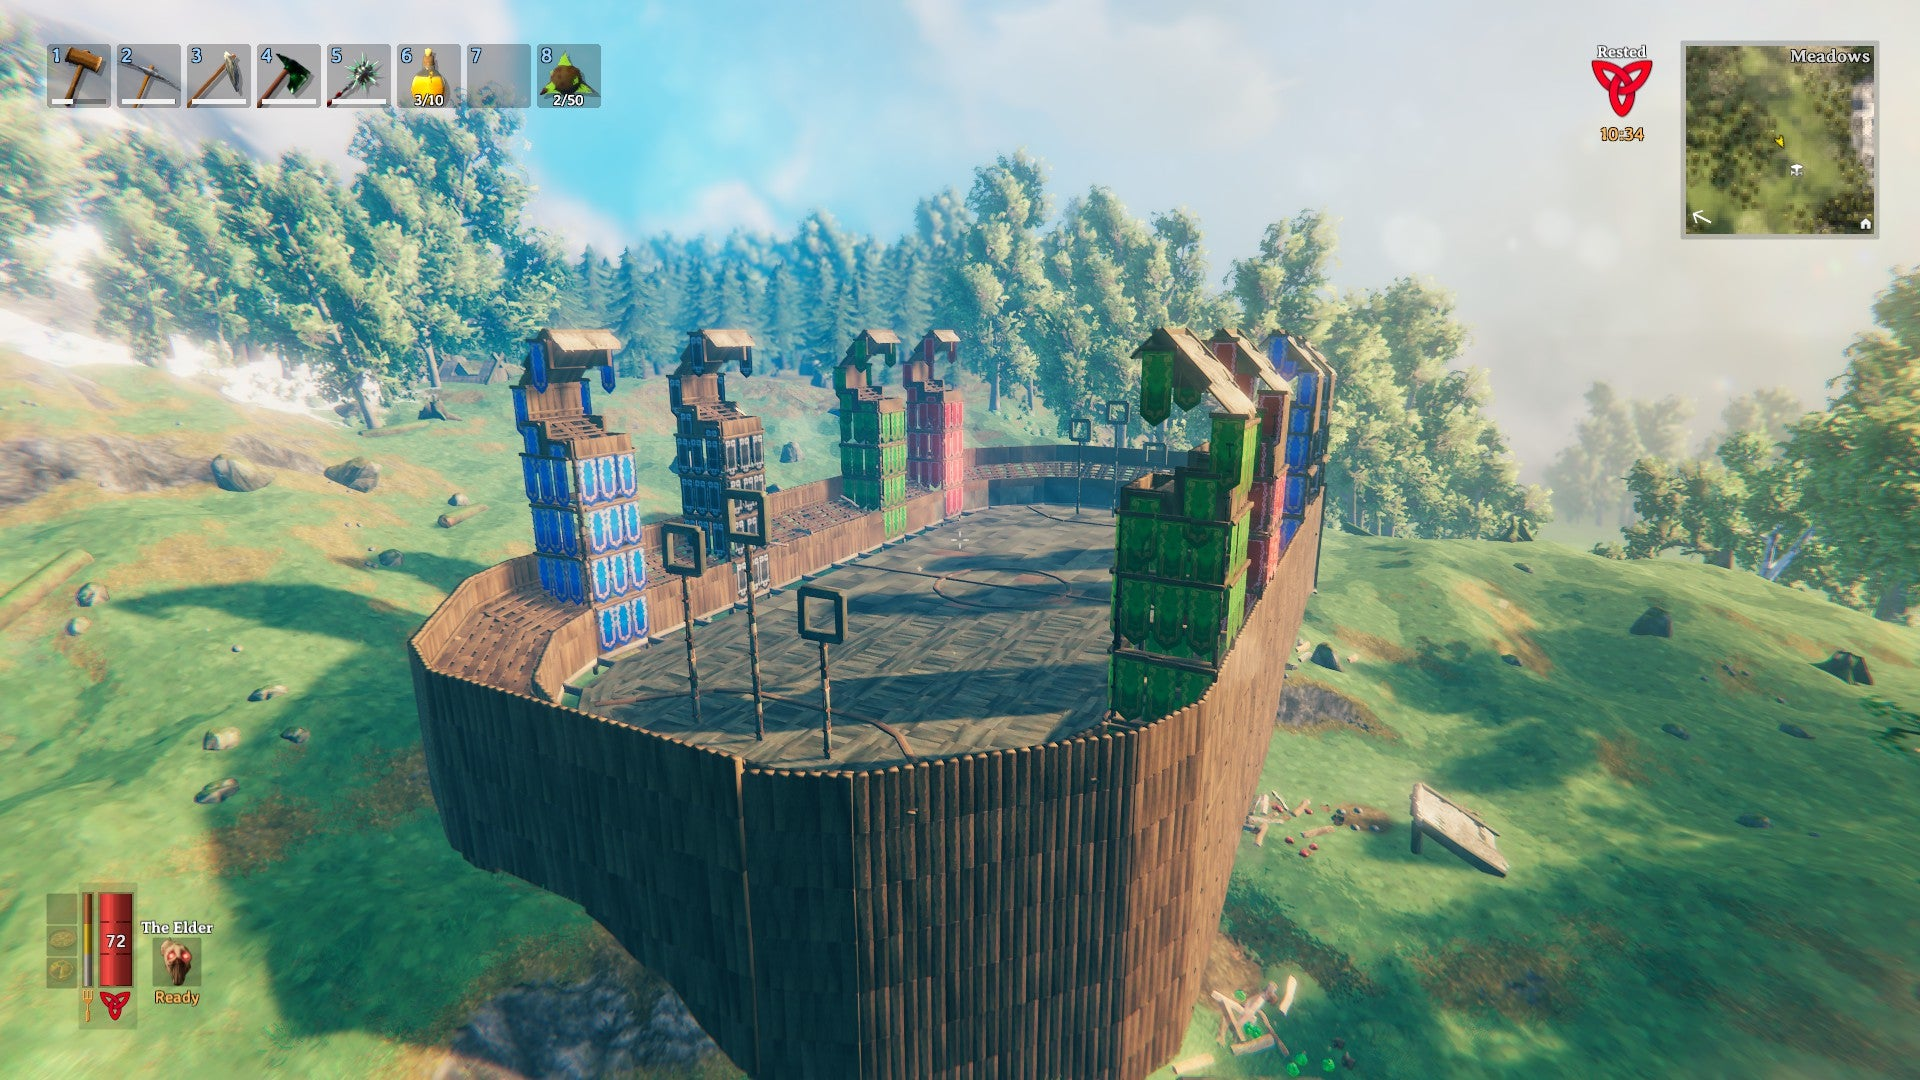 Most impressively, Zabore managed to remake a wonderful recreation of the Quidditch pitch in the video game.